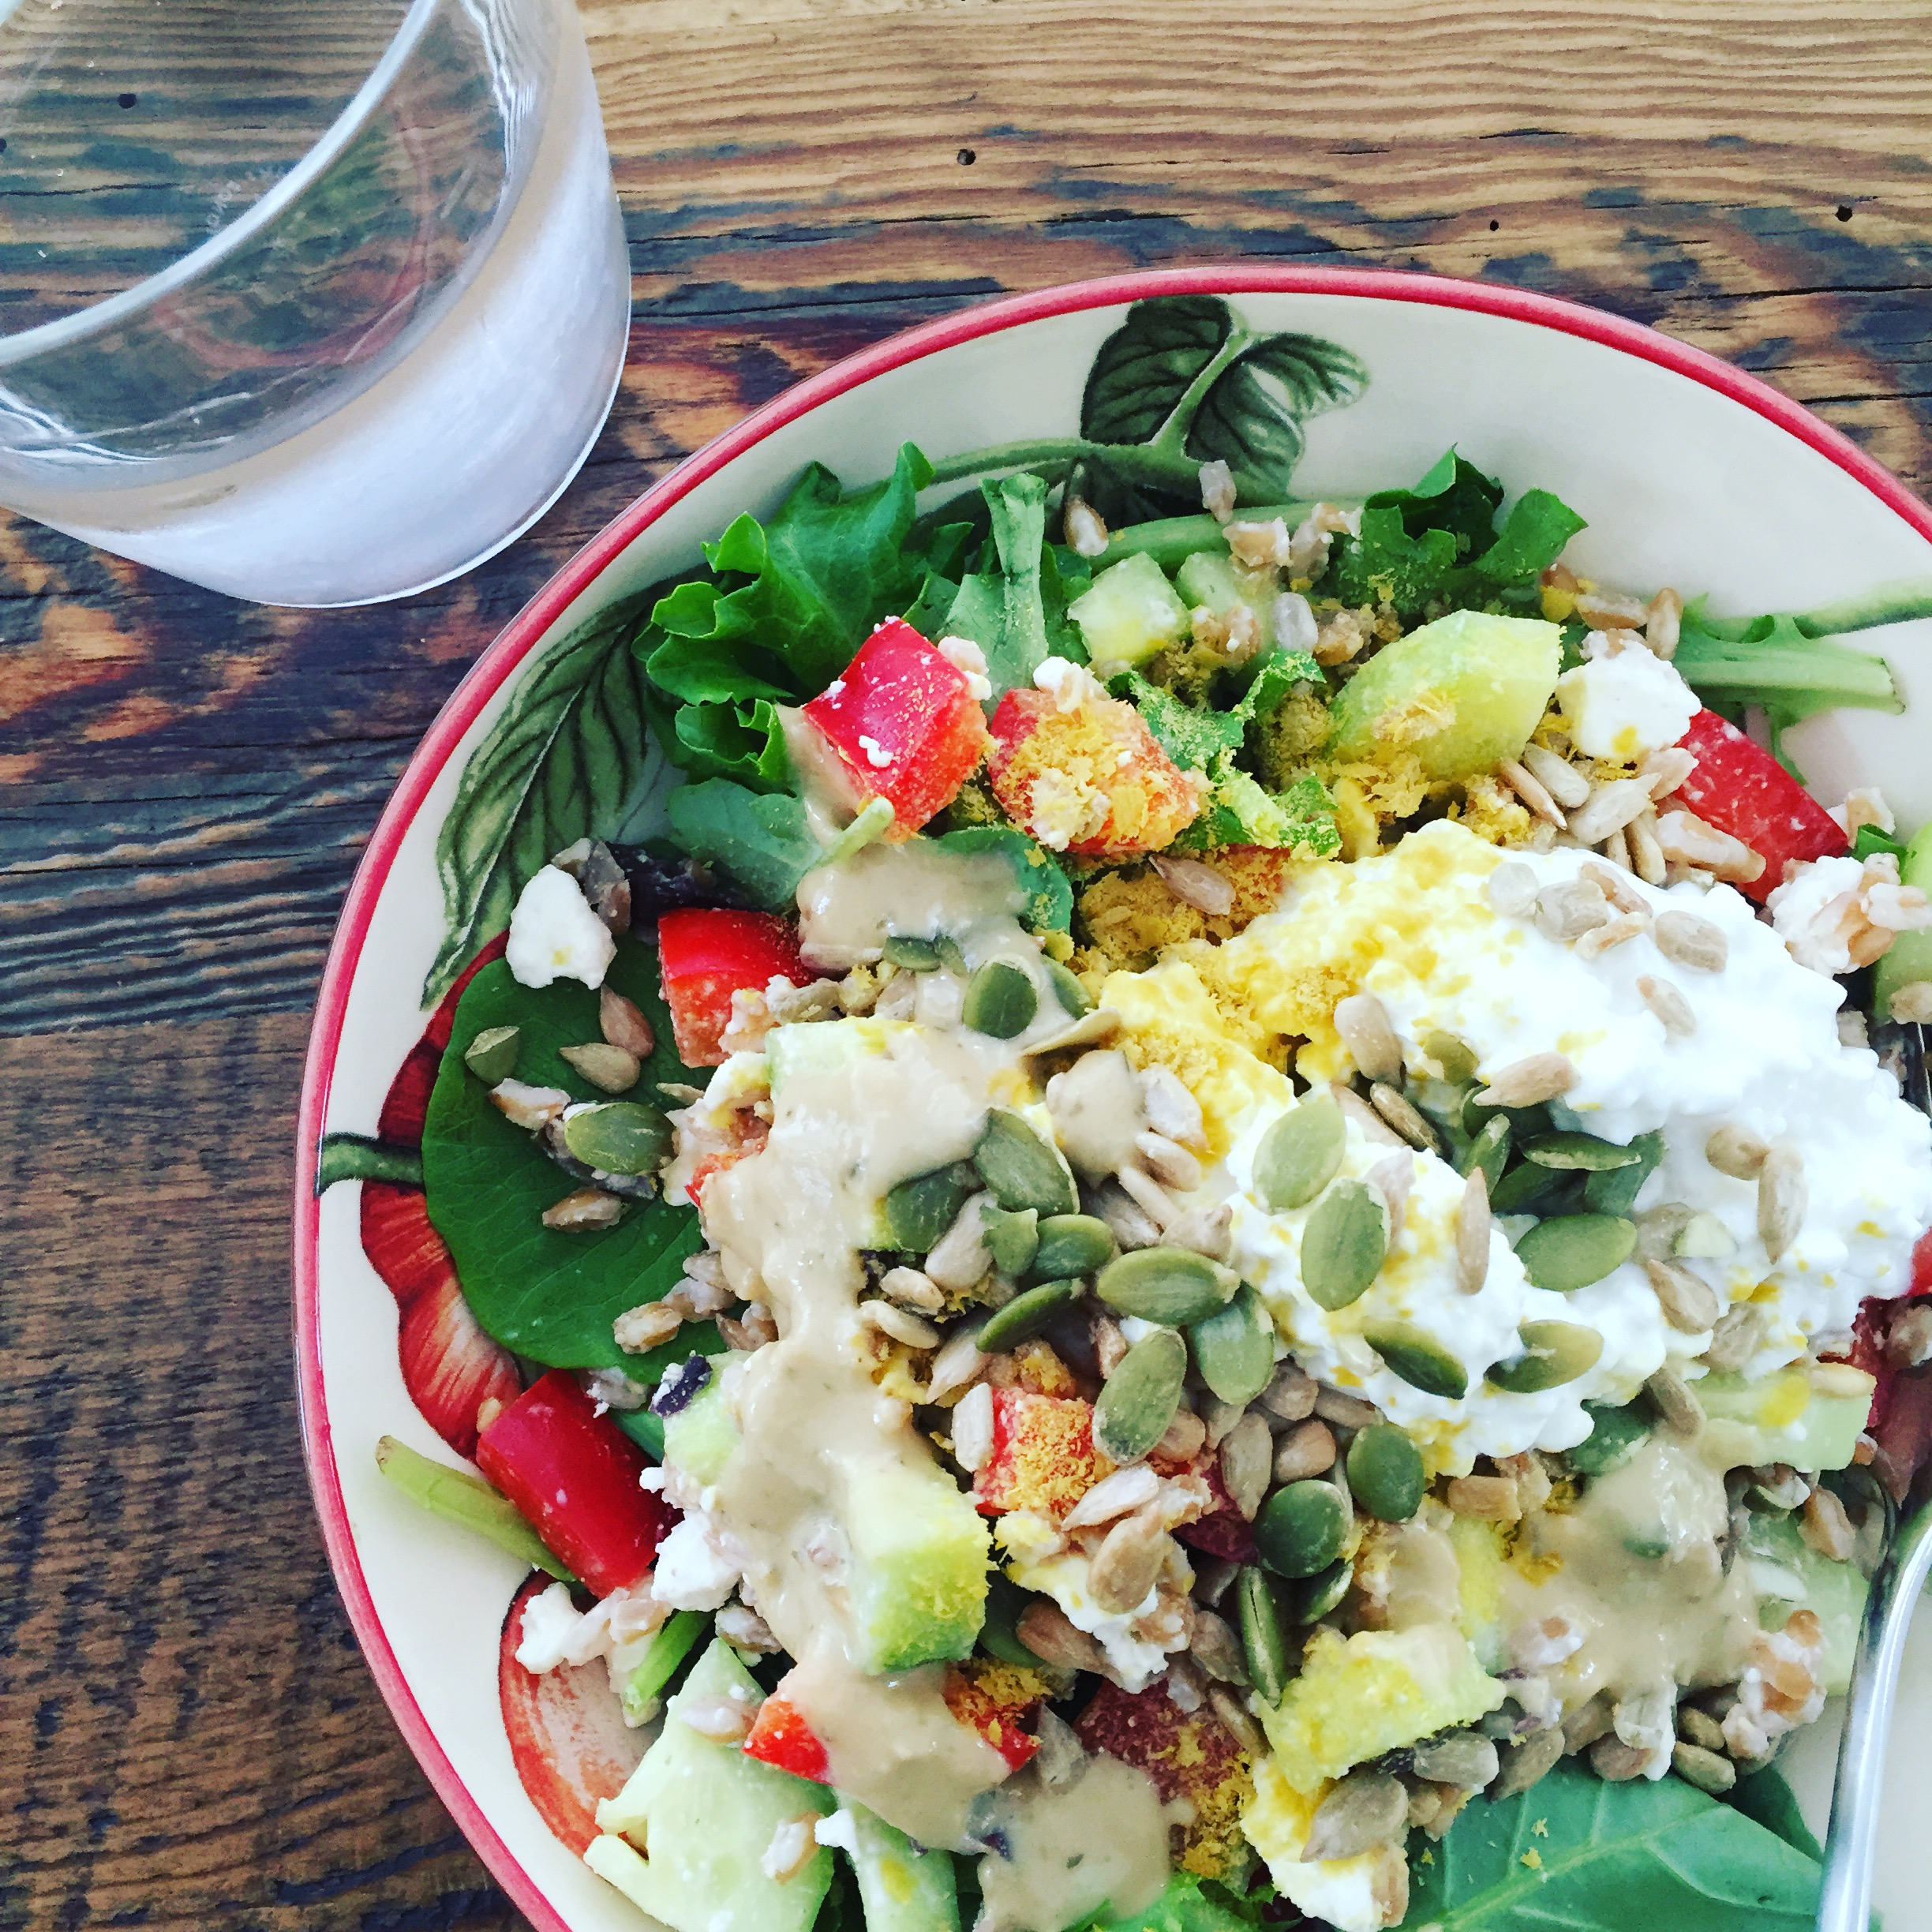 Farro Salad on a bed of lettuce with cottage cheese, sunflower seeds, pumpkin seeds, nutritional yeast and goddess dressing.